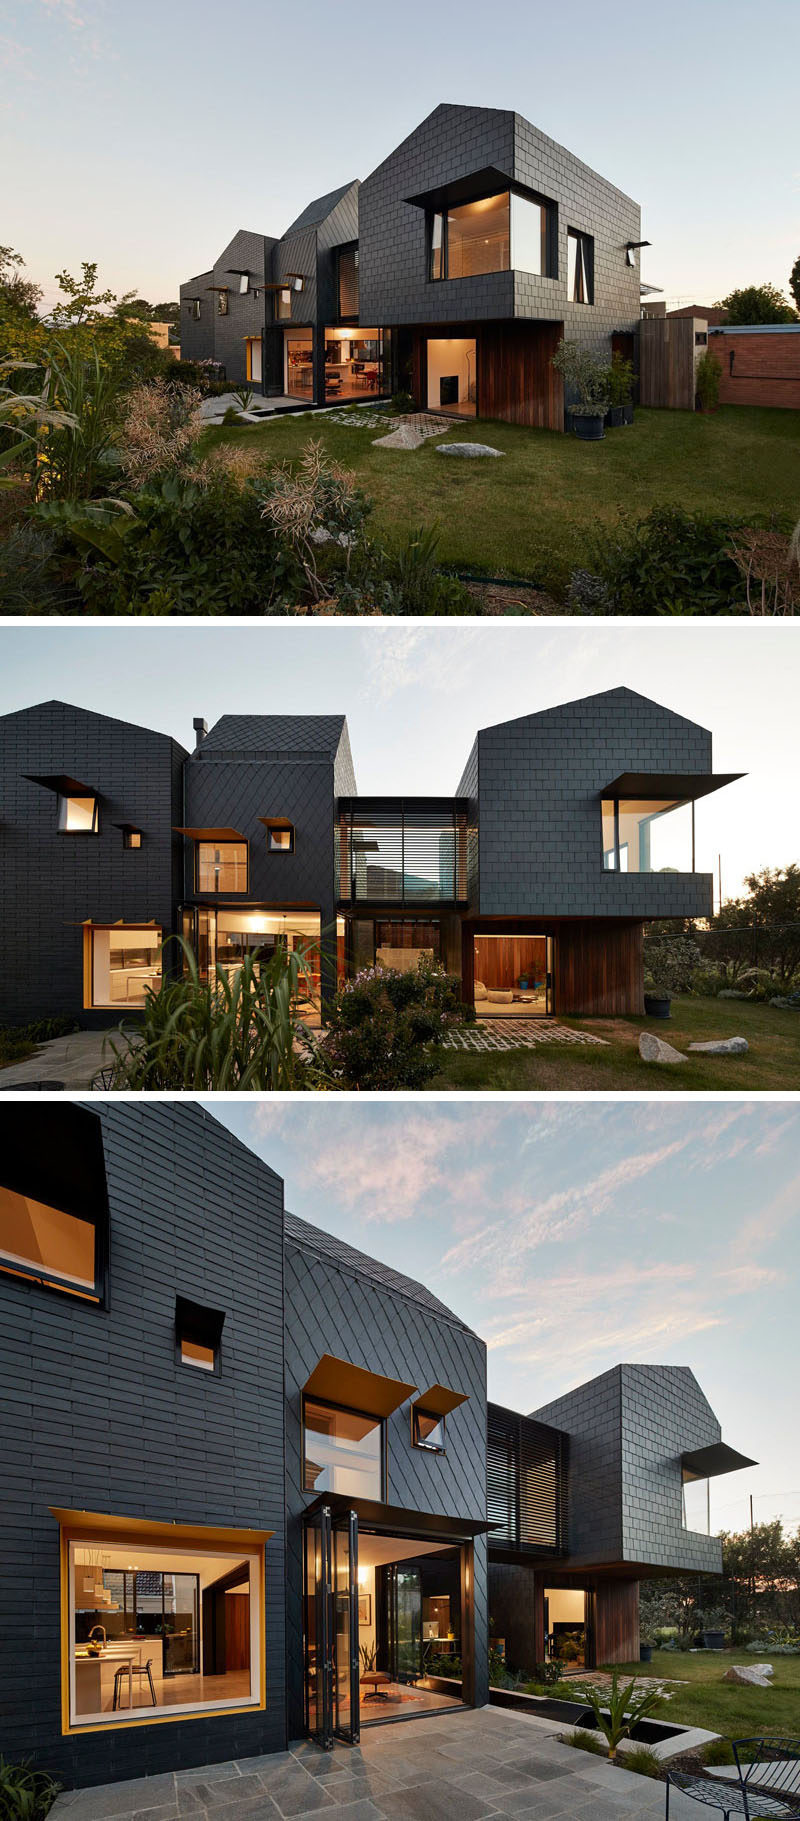 Dark grey slate covers this modern home and from this angle, you can see how the patterns of the tile installation change depending on the section of the house.